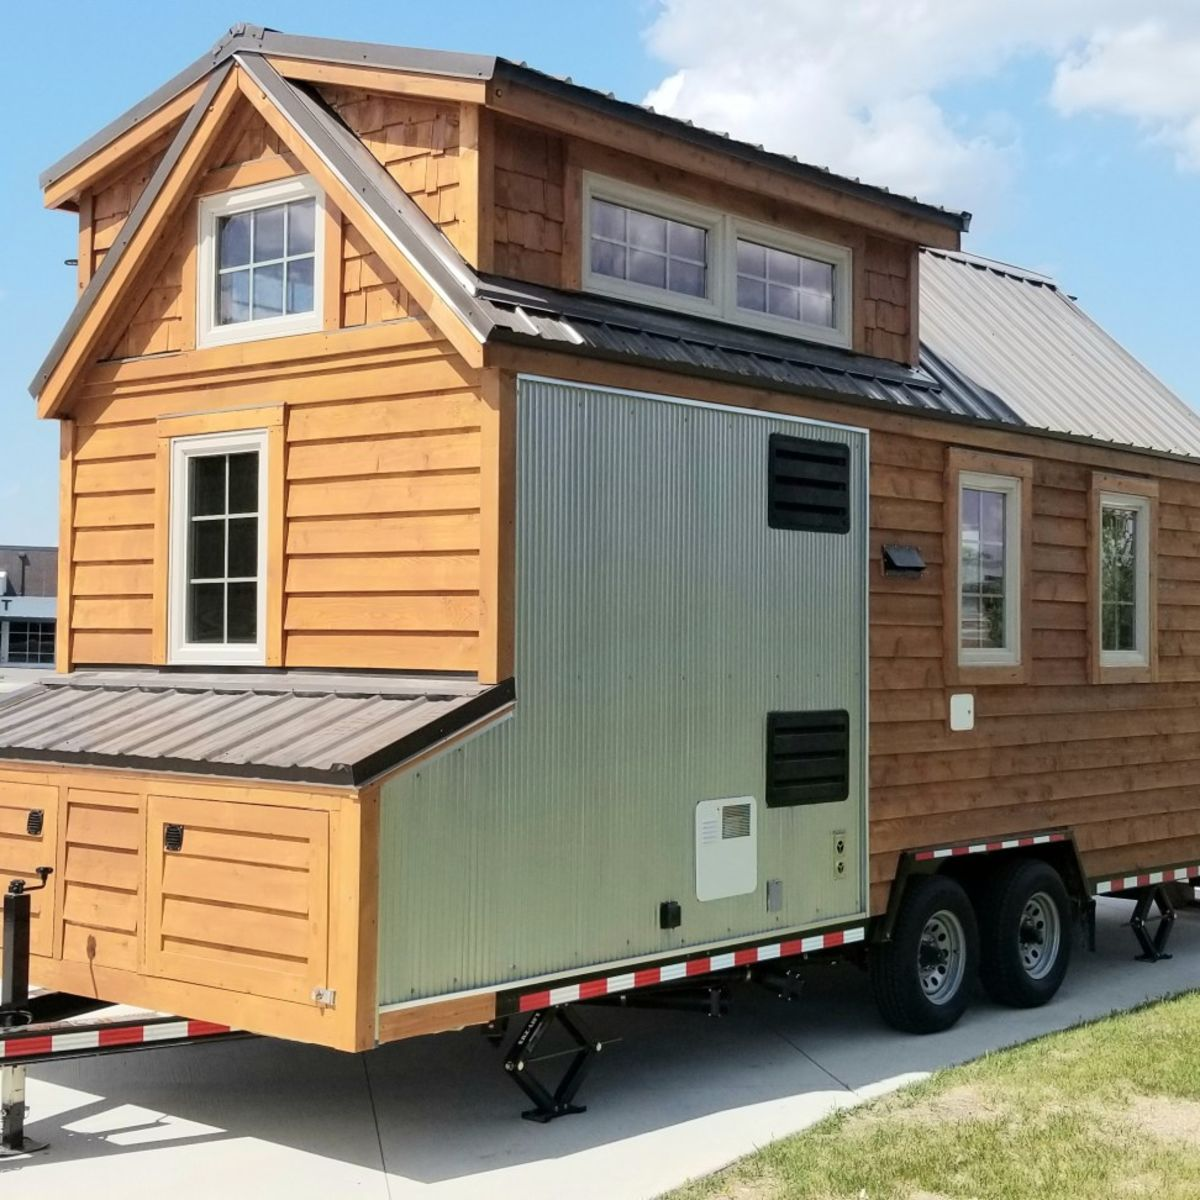 20' Tiny House With Exterior Storage Compartments And Fold